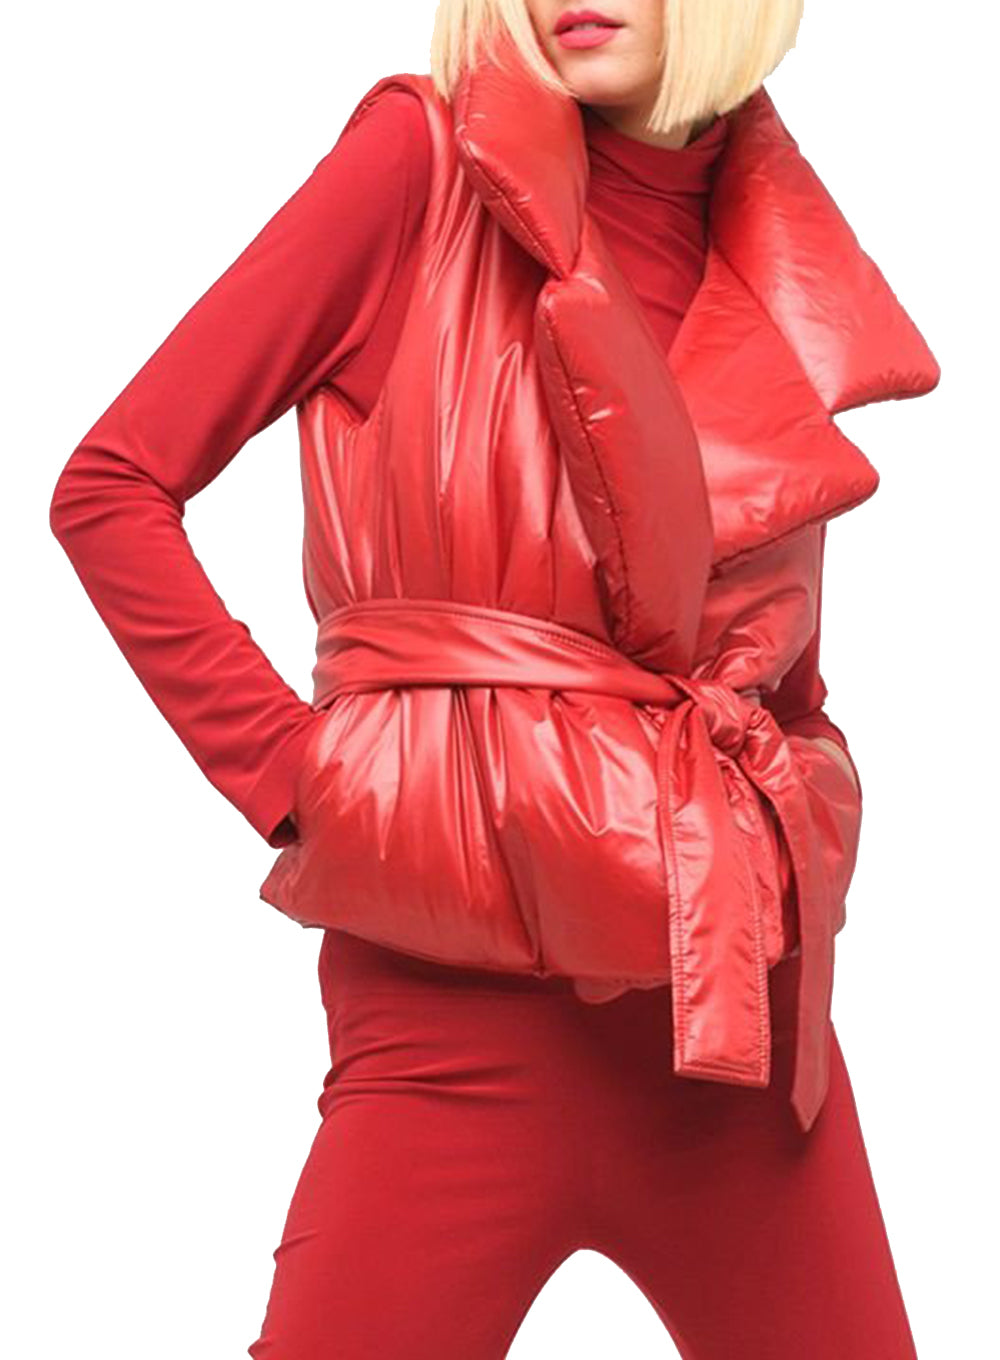 NORMA KAMALI | Sleeveless Sleeping Bag Vest in Red